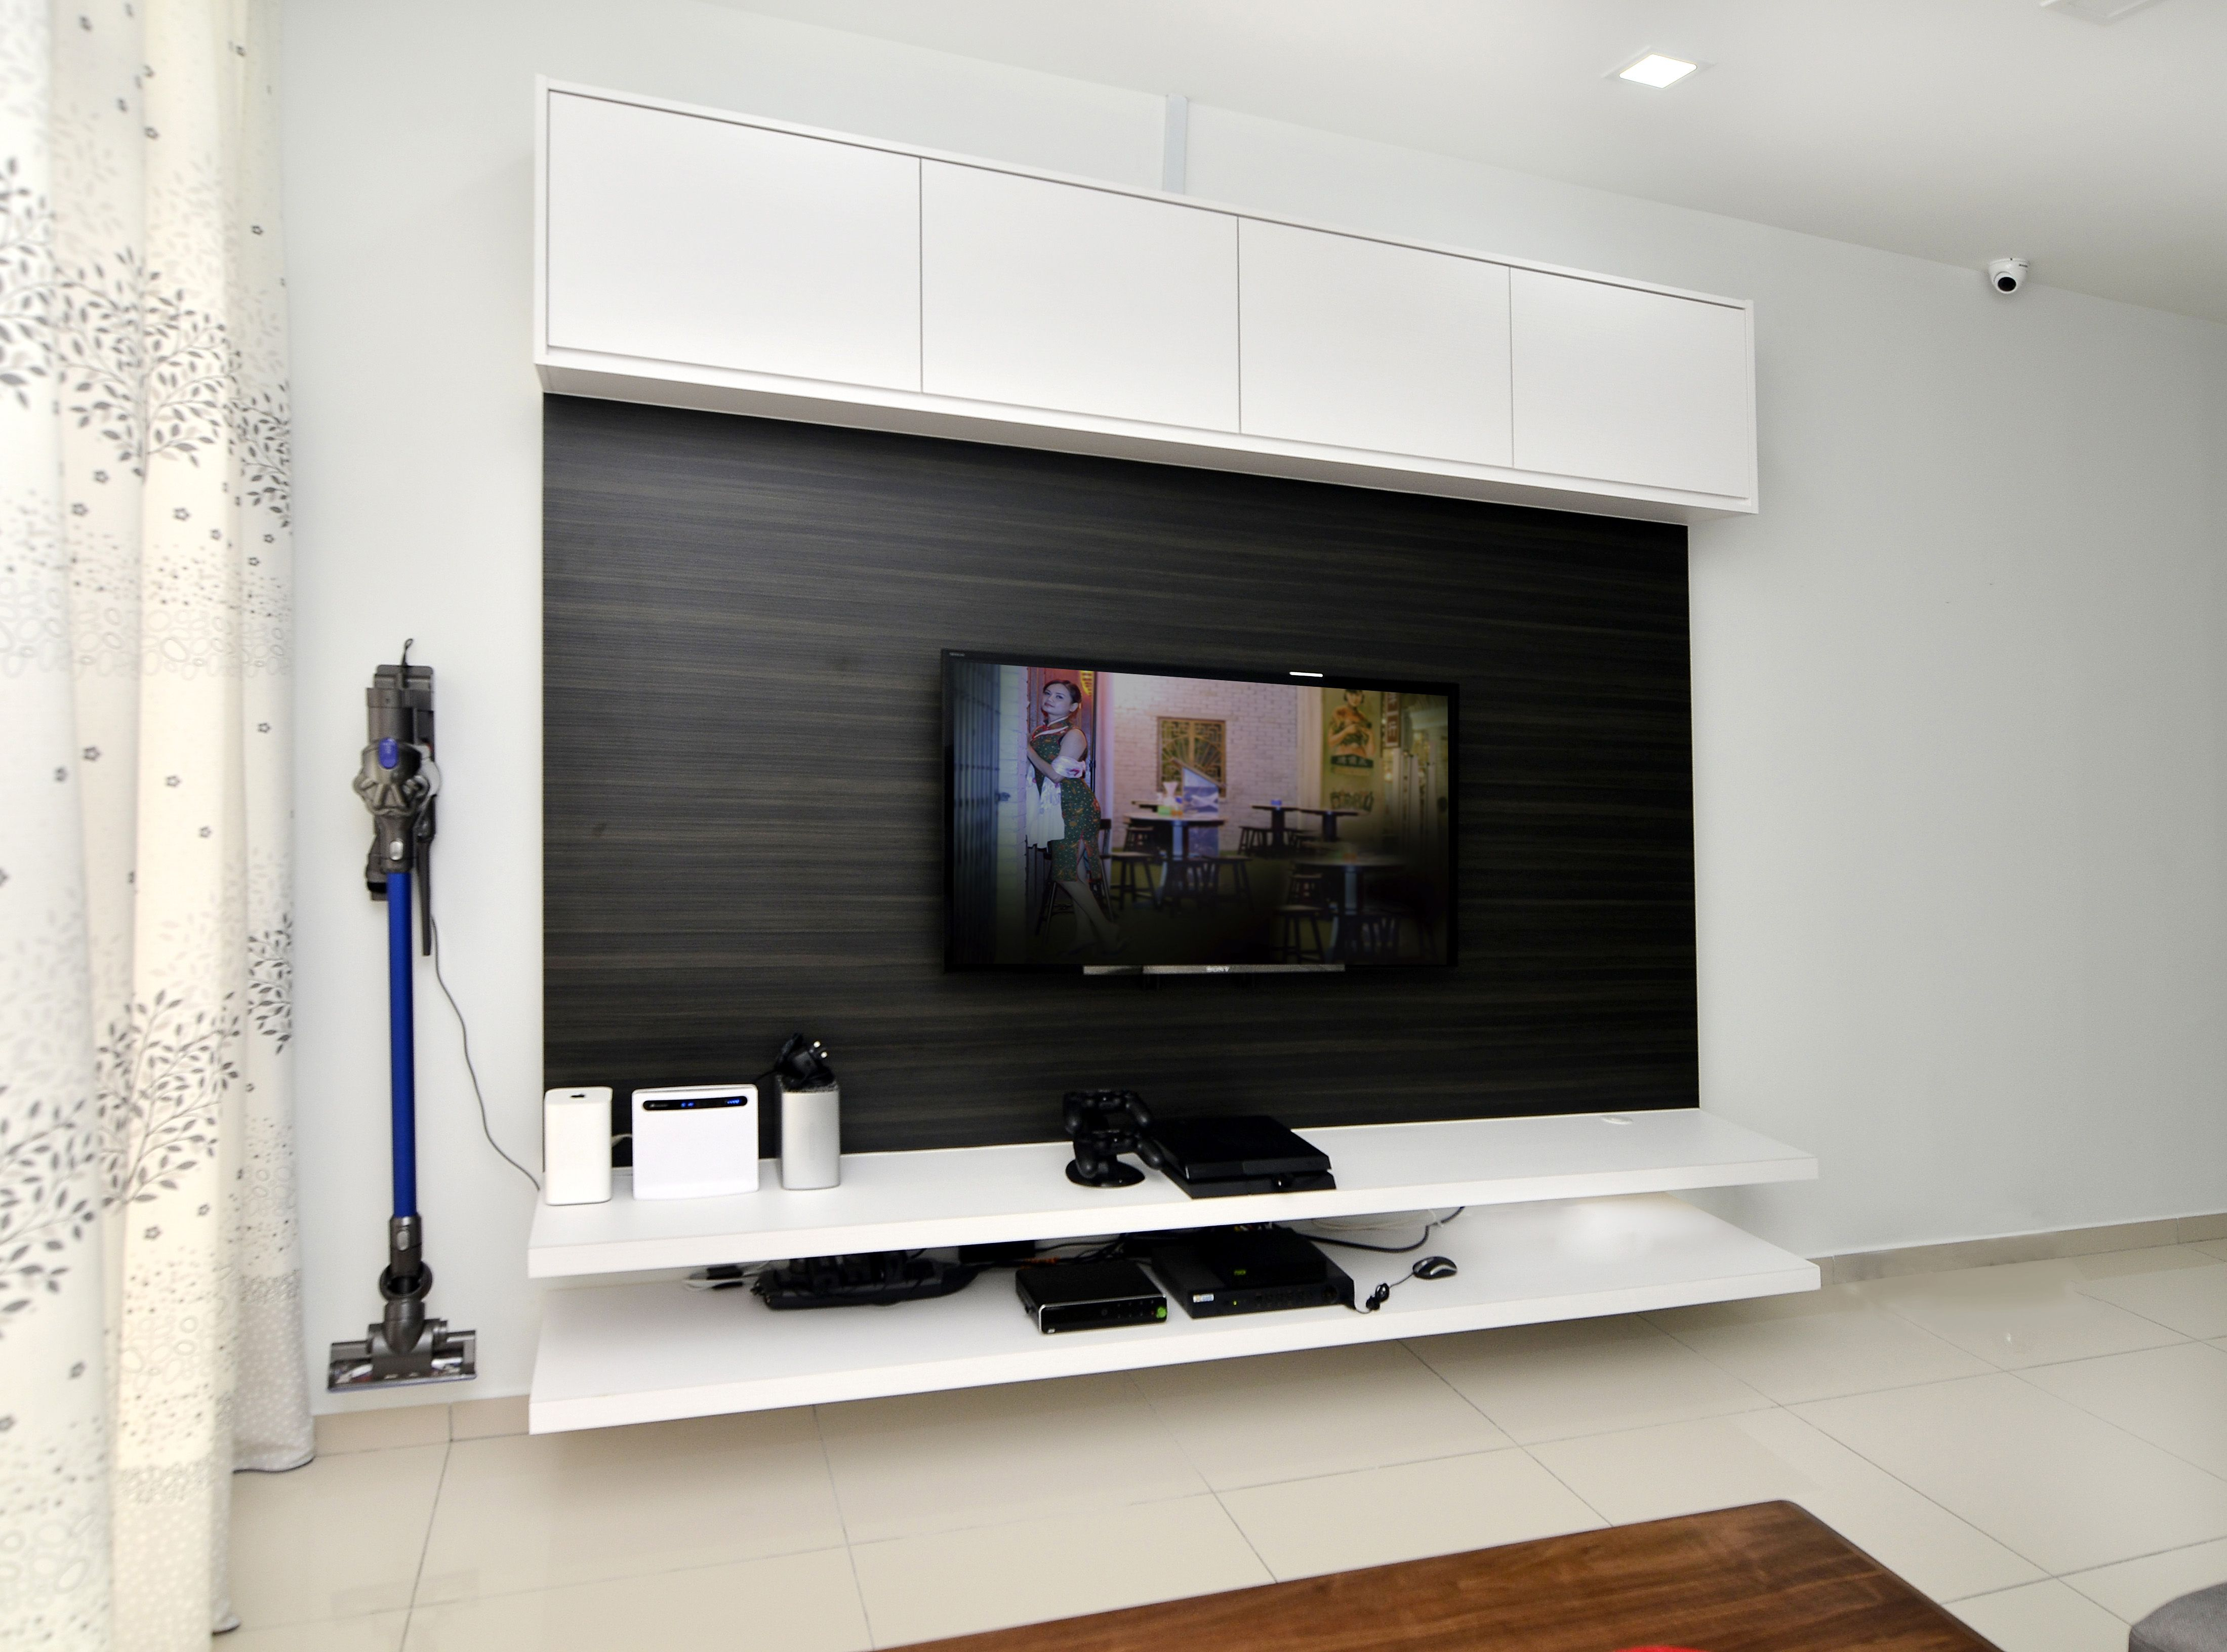 tv console cabinet white laminate wood livingroom on incredible tv wall design ideas for living room decor layouts of tv models id=46000